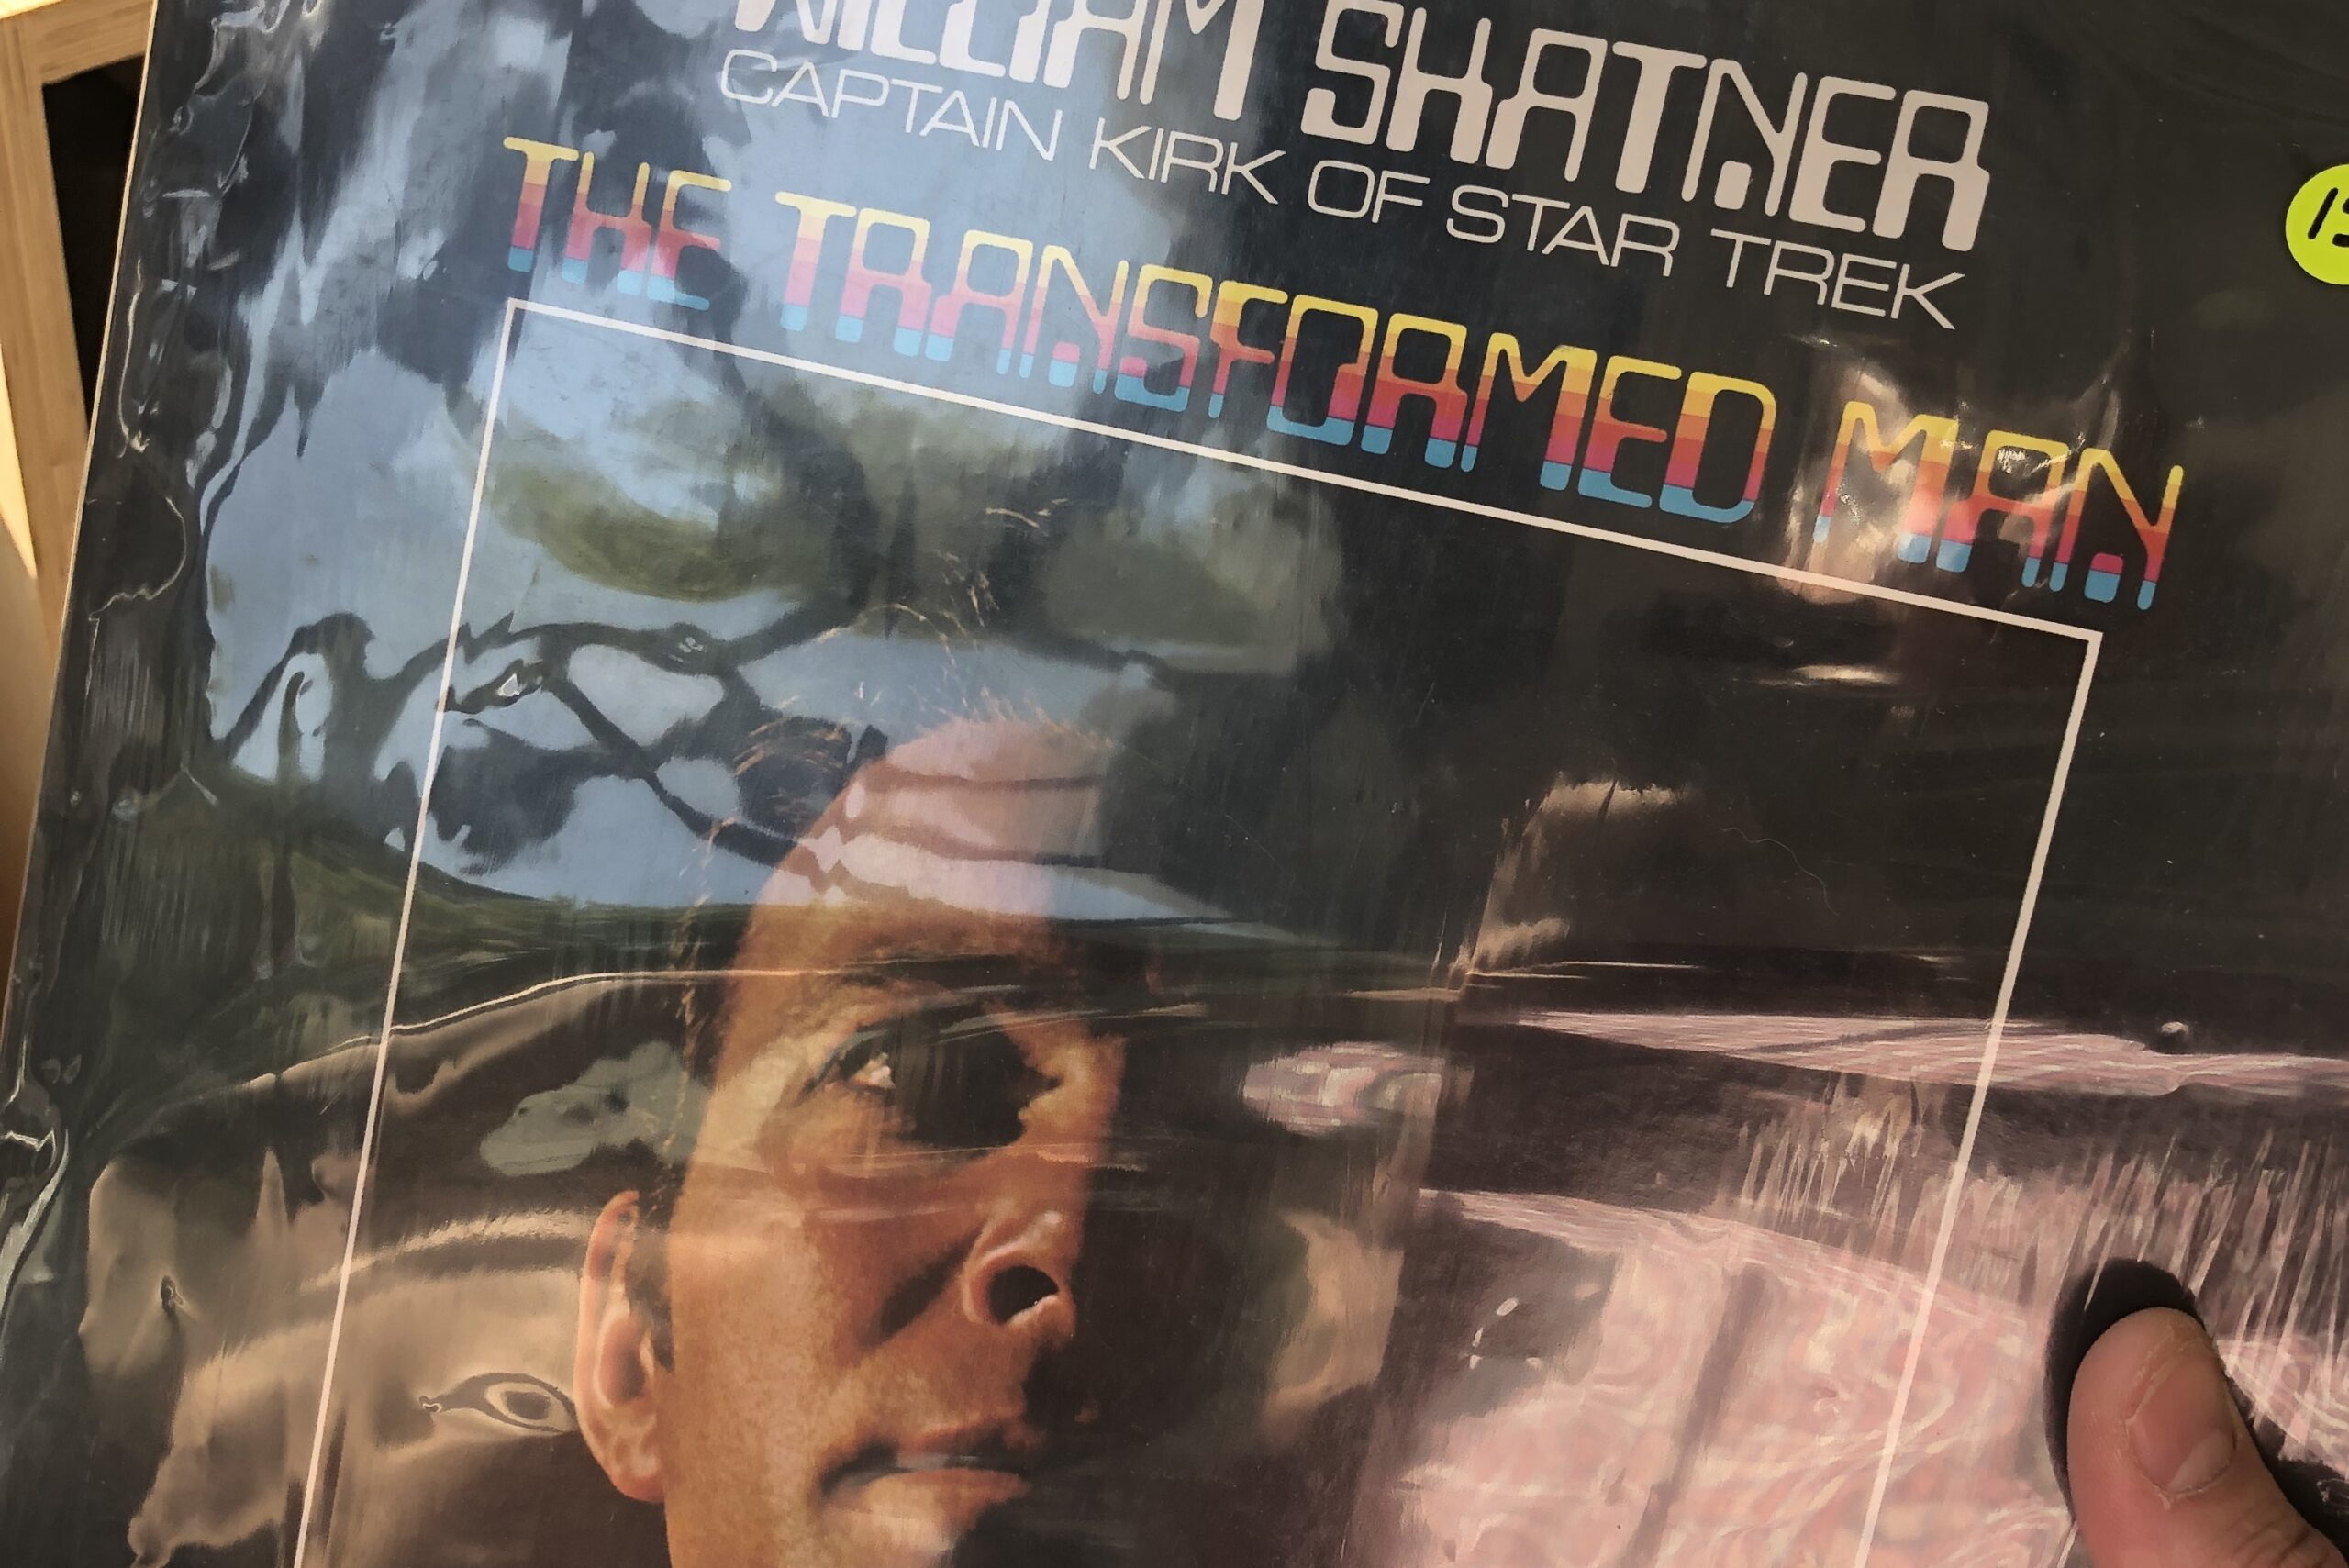 Discovering William Shatner's first spoken word album in a bakery